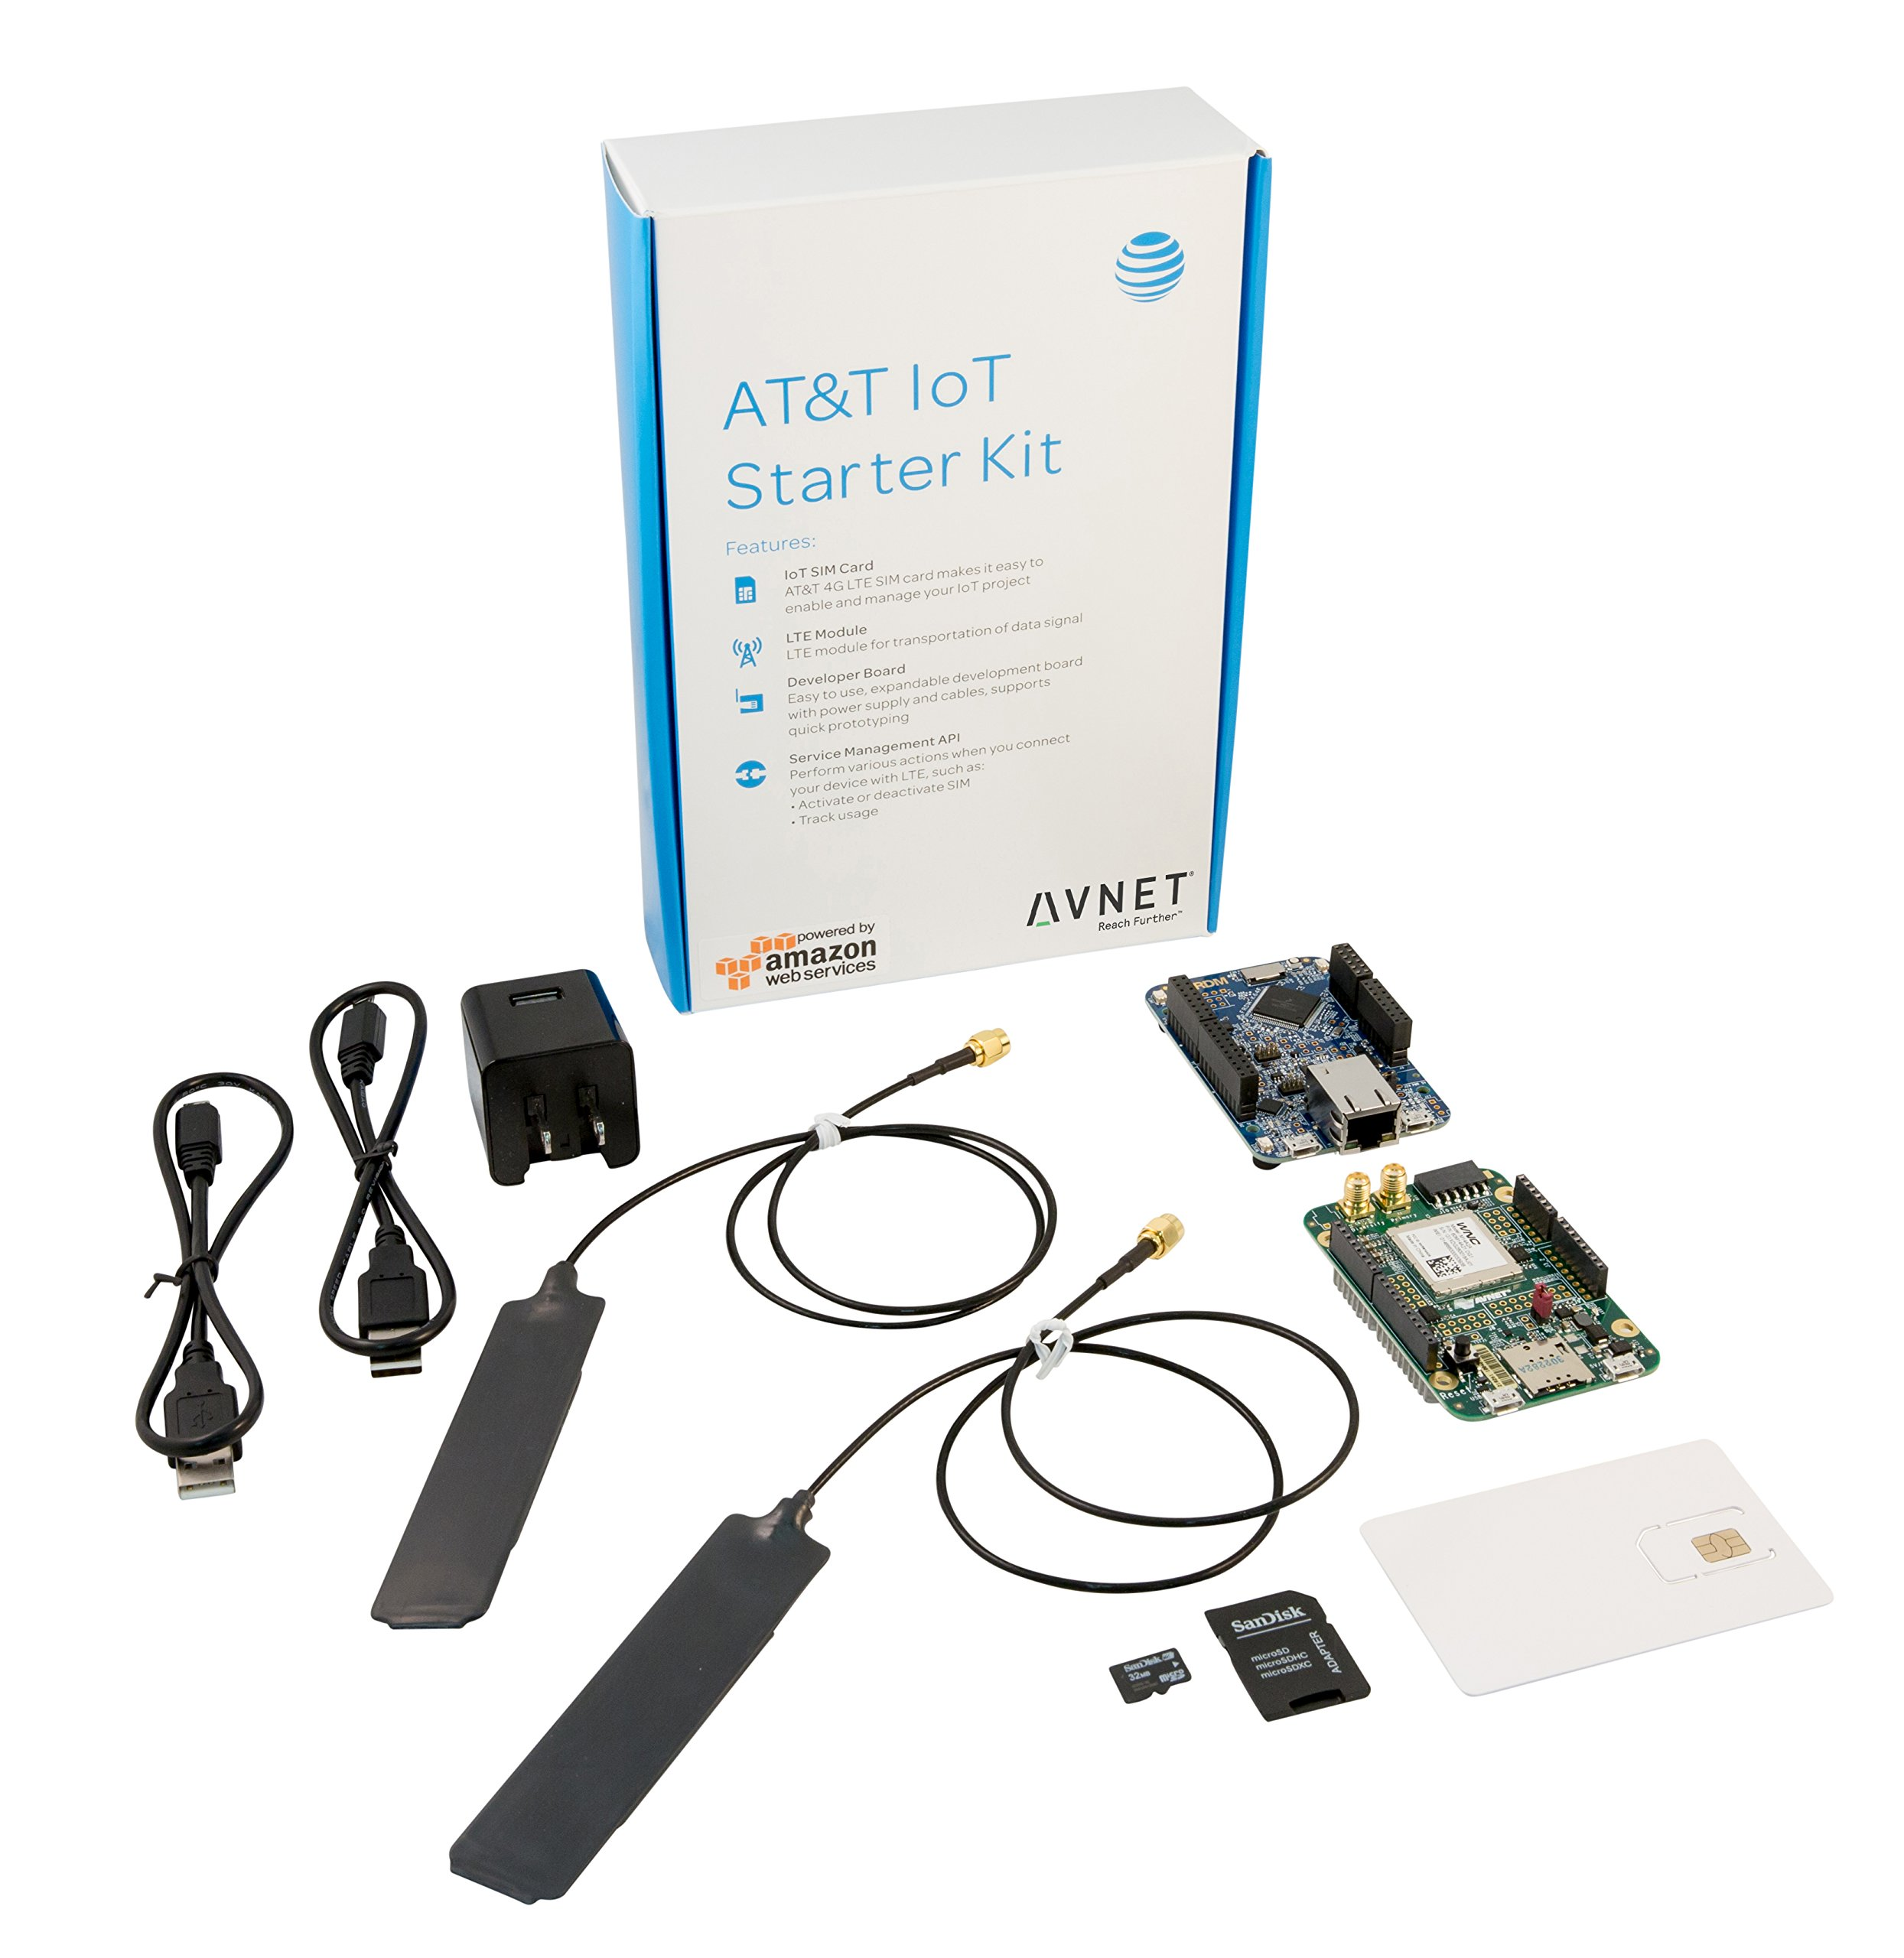 AT&T IoT Starter Kit Powered by AWS